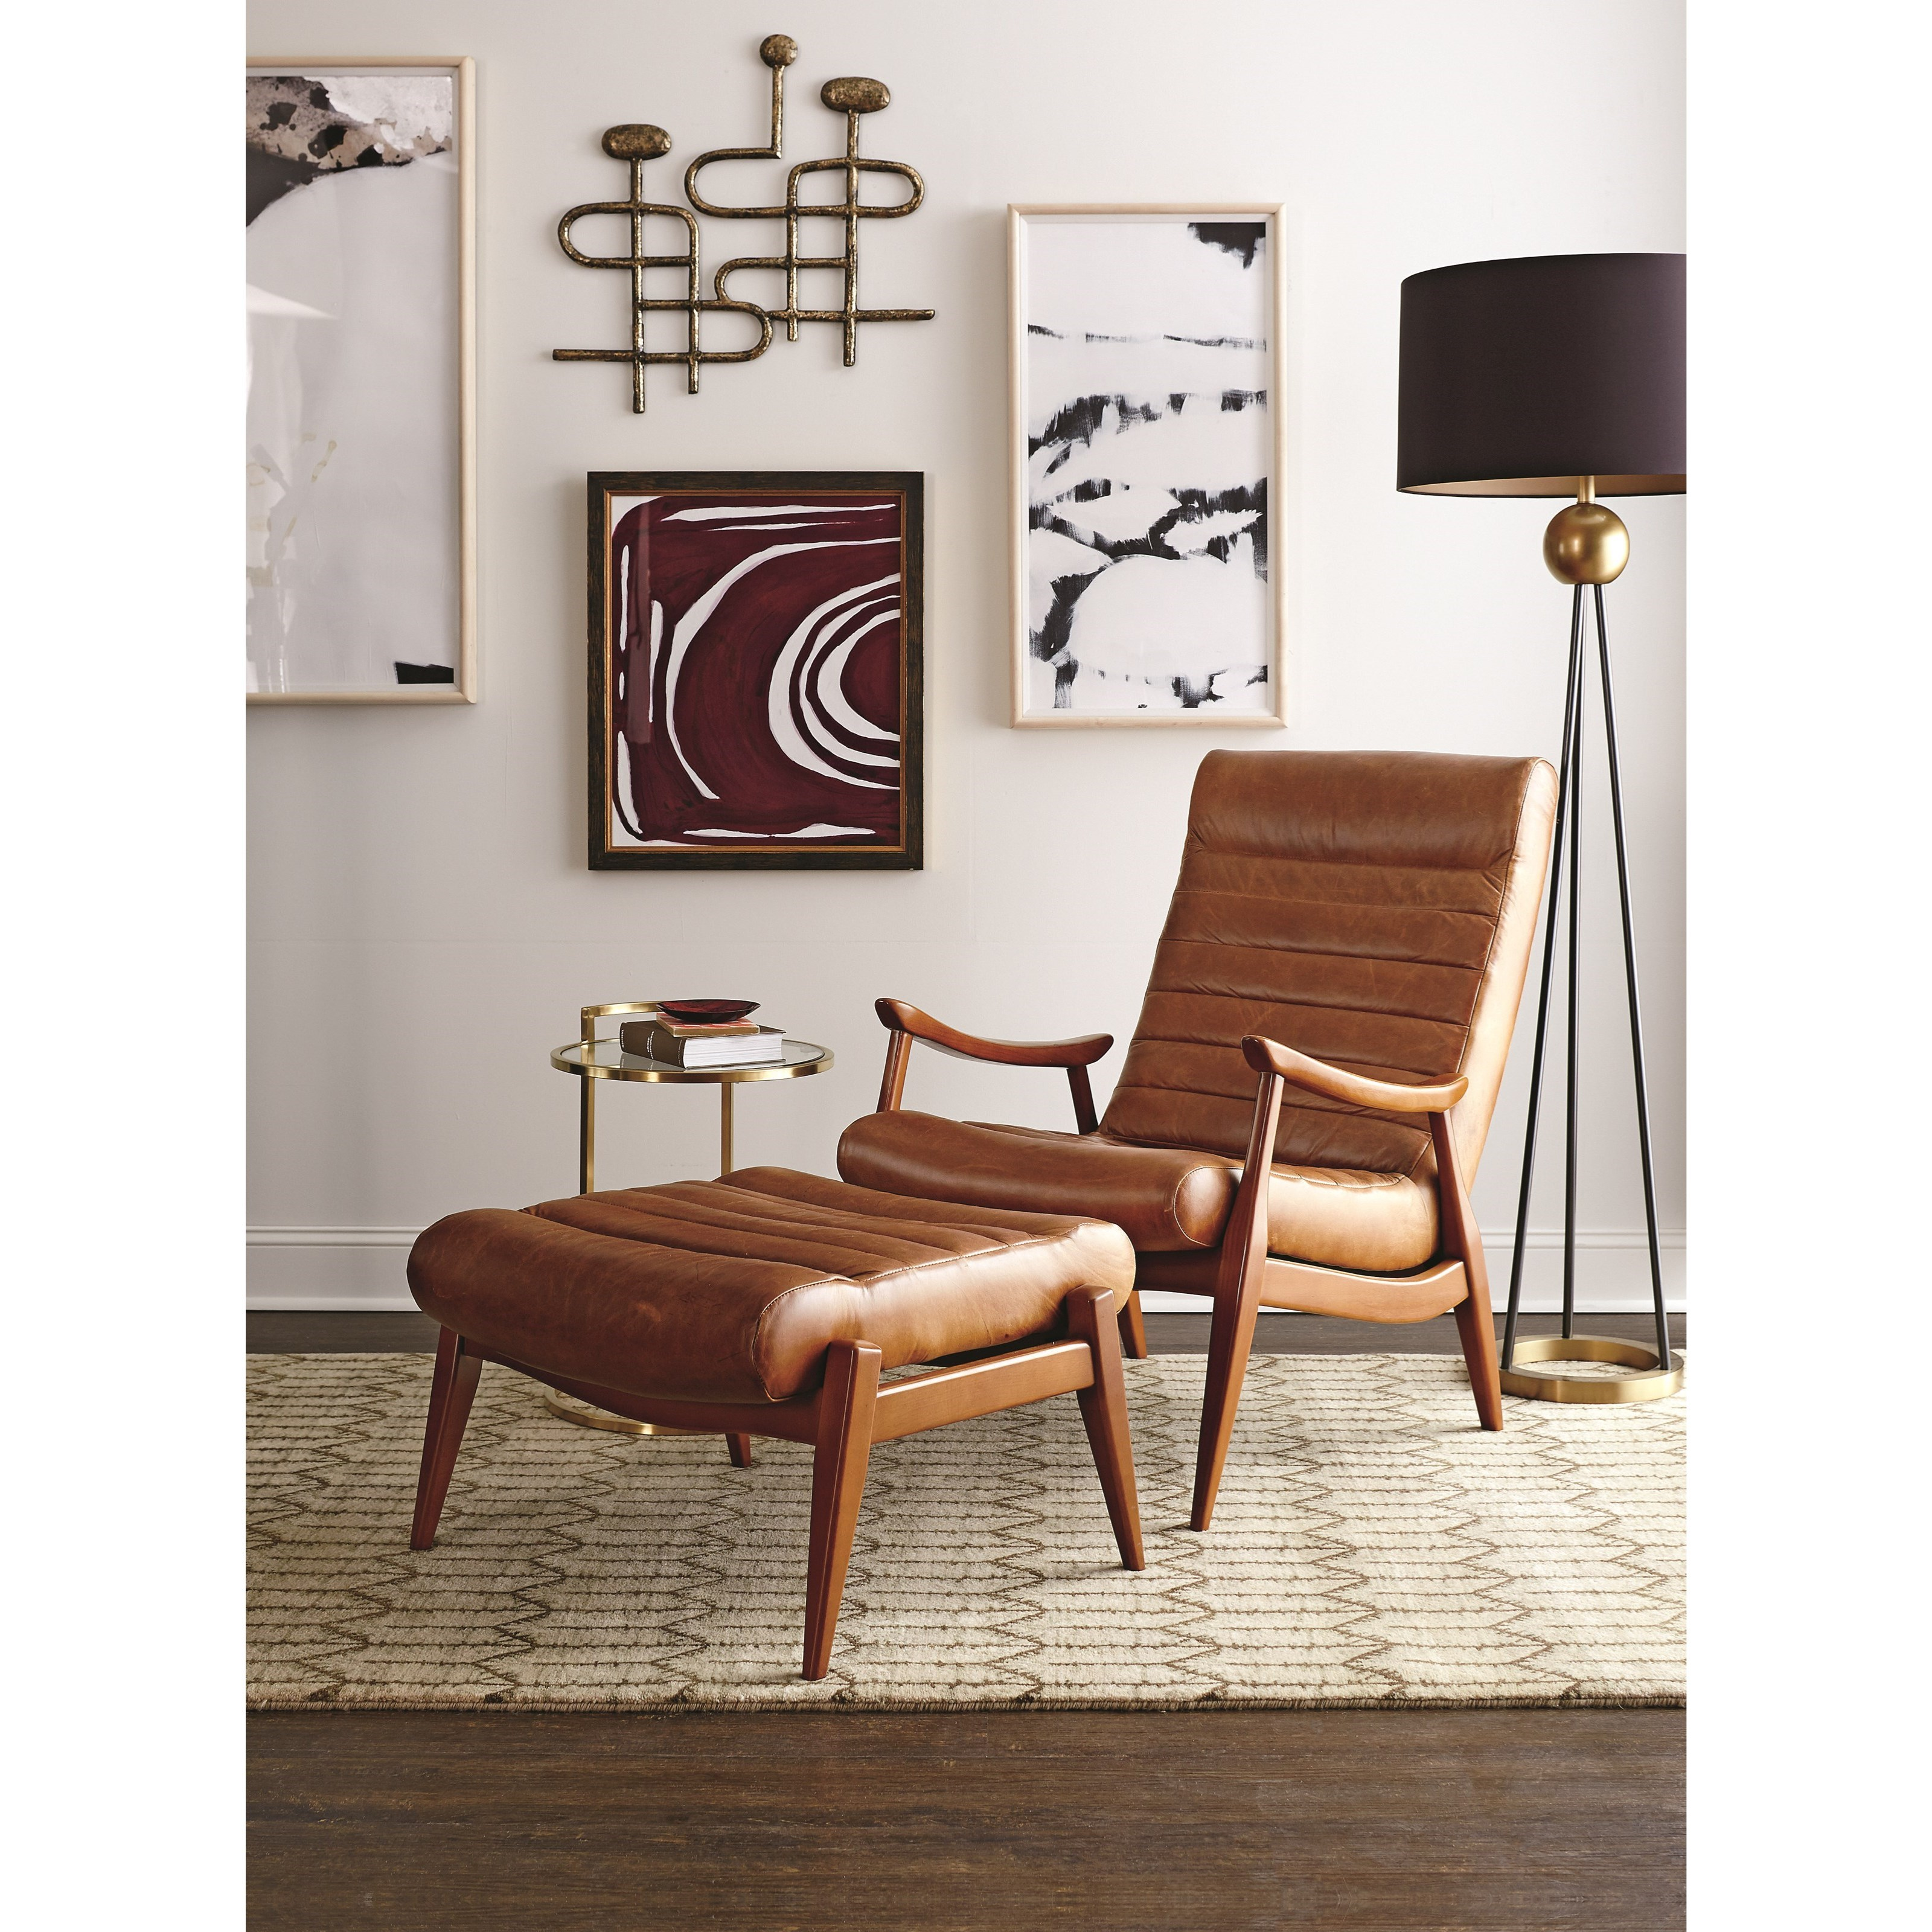 Chairs and accents hans mid century modern chair and ottoman with exposed wood frame by klaussner